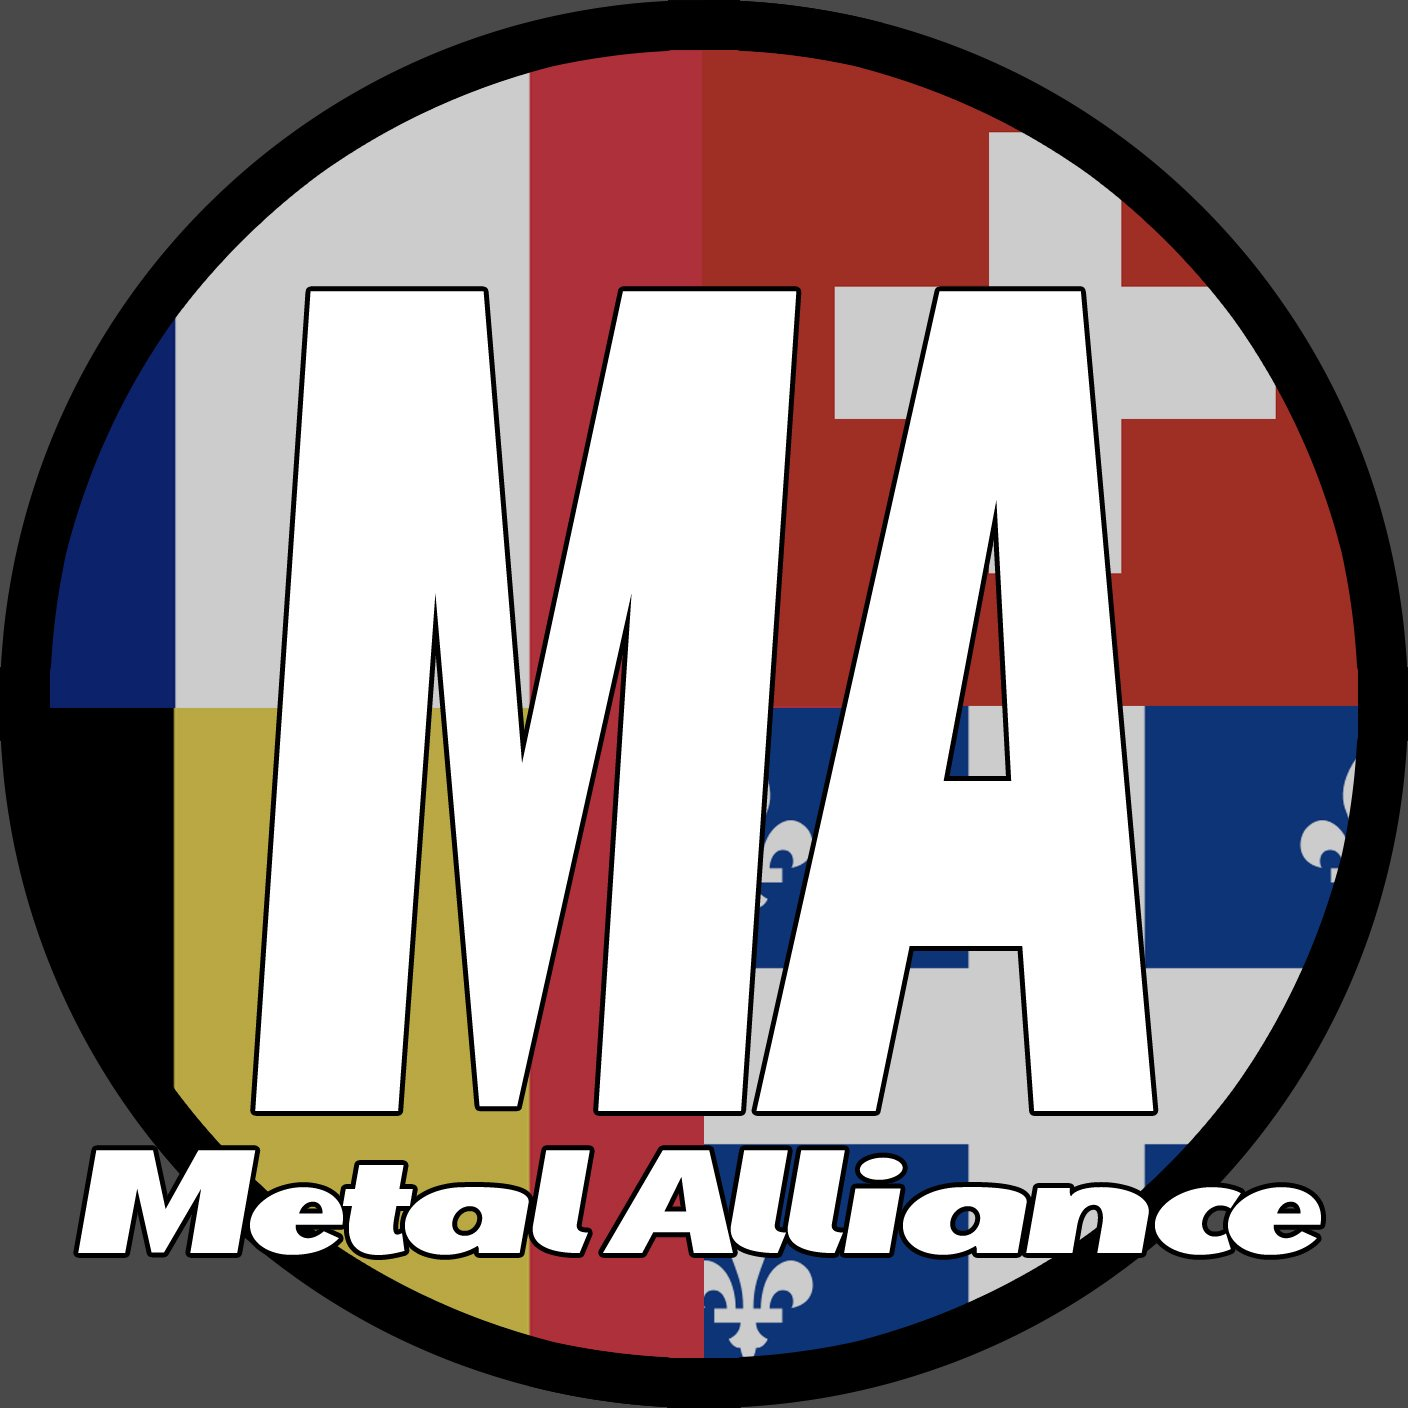 Metalalliance